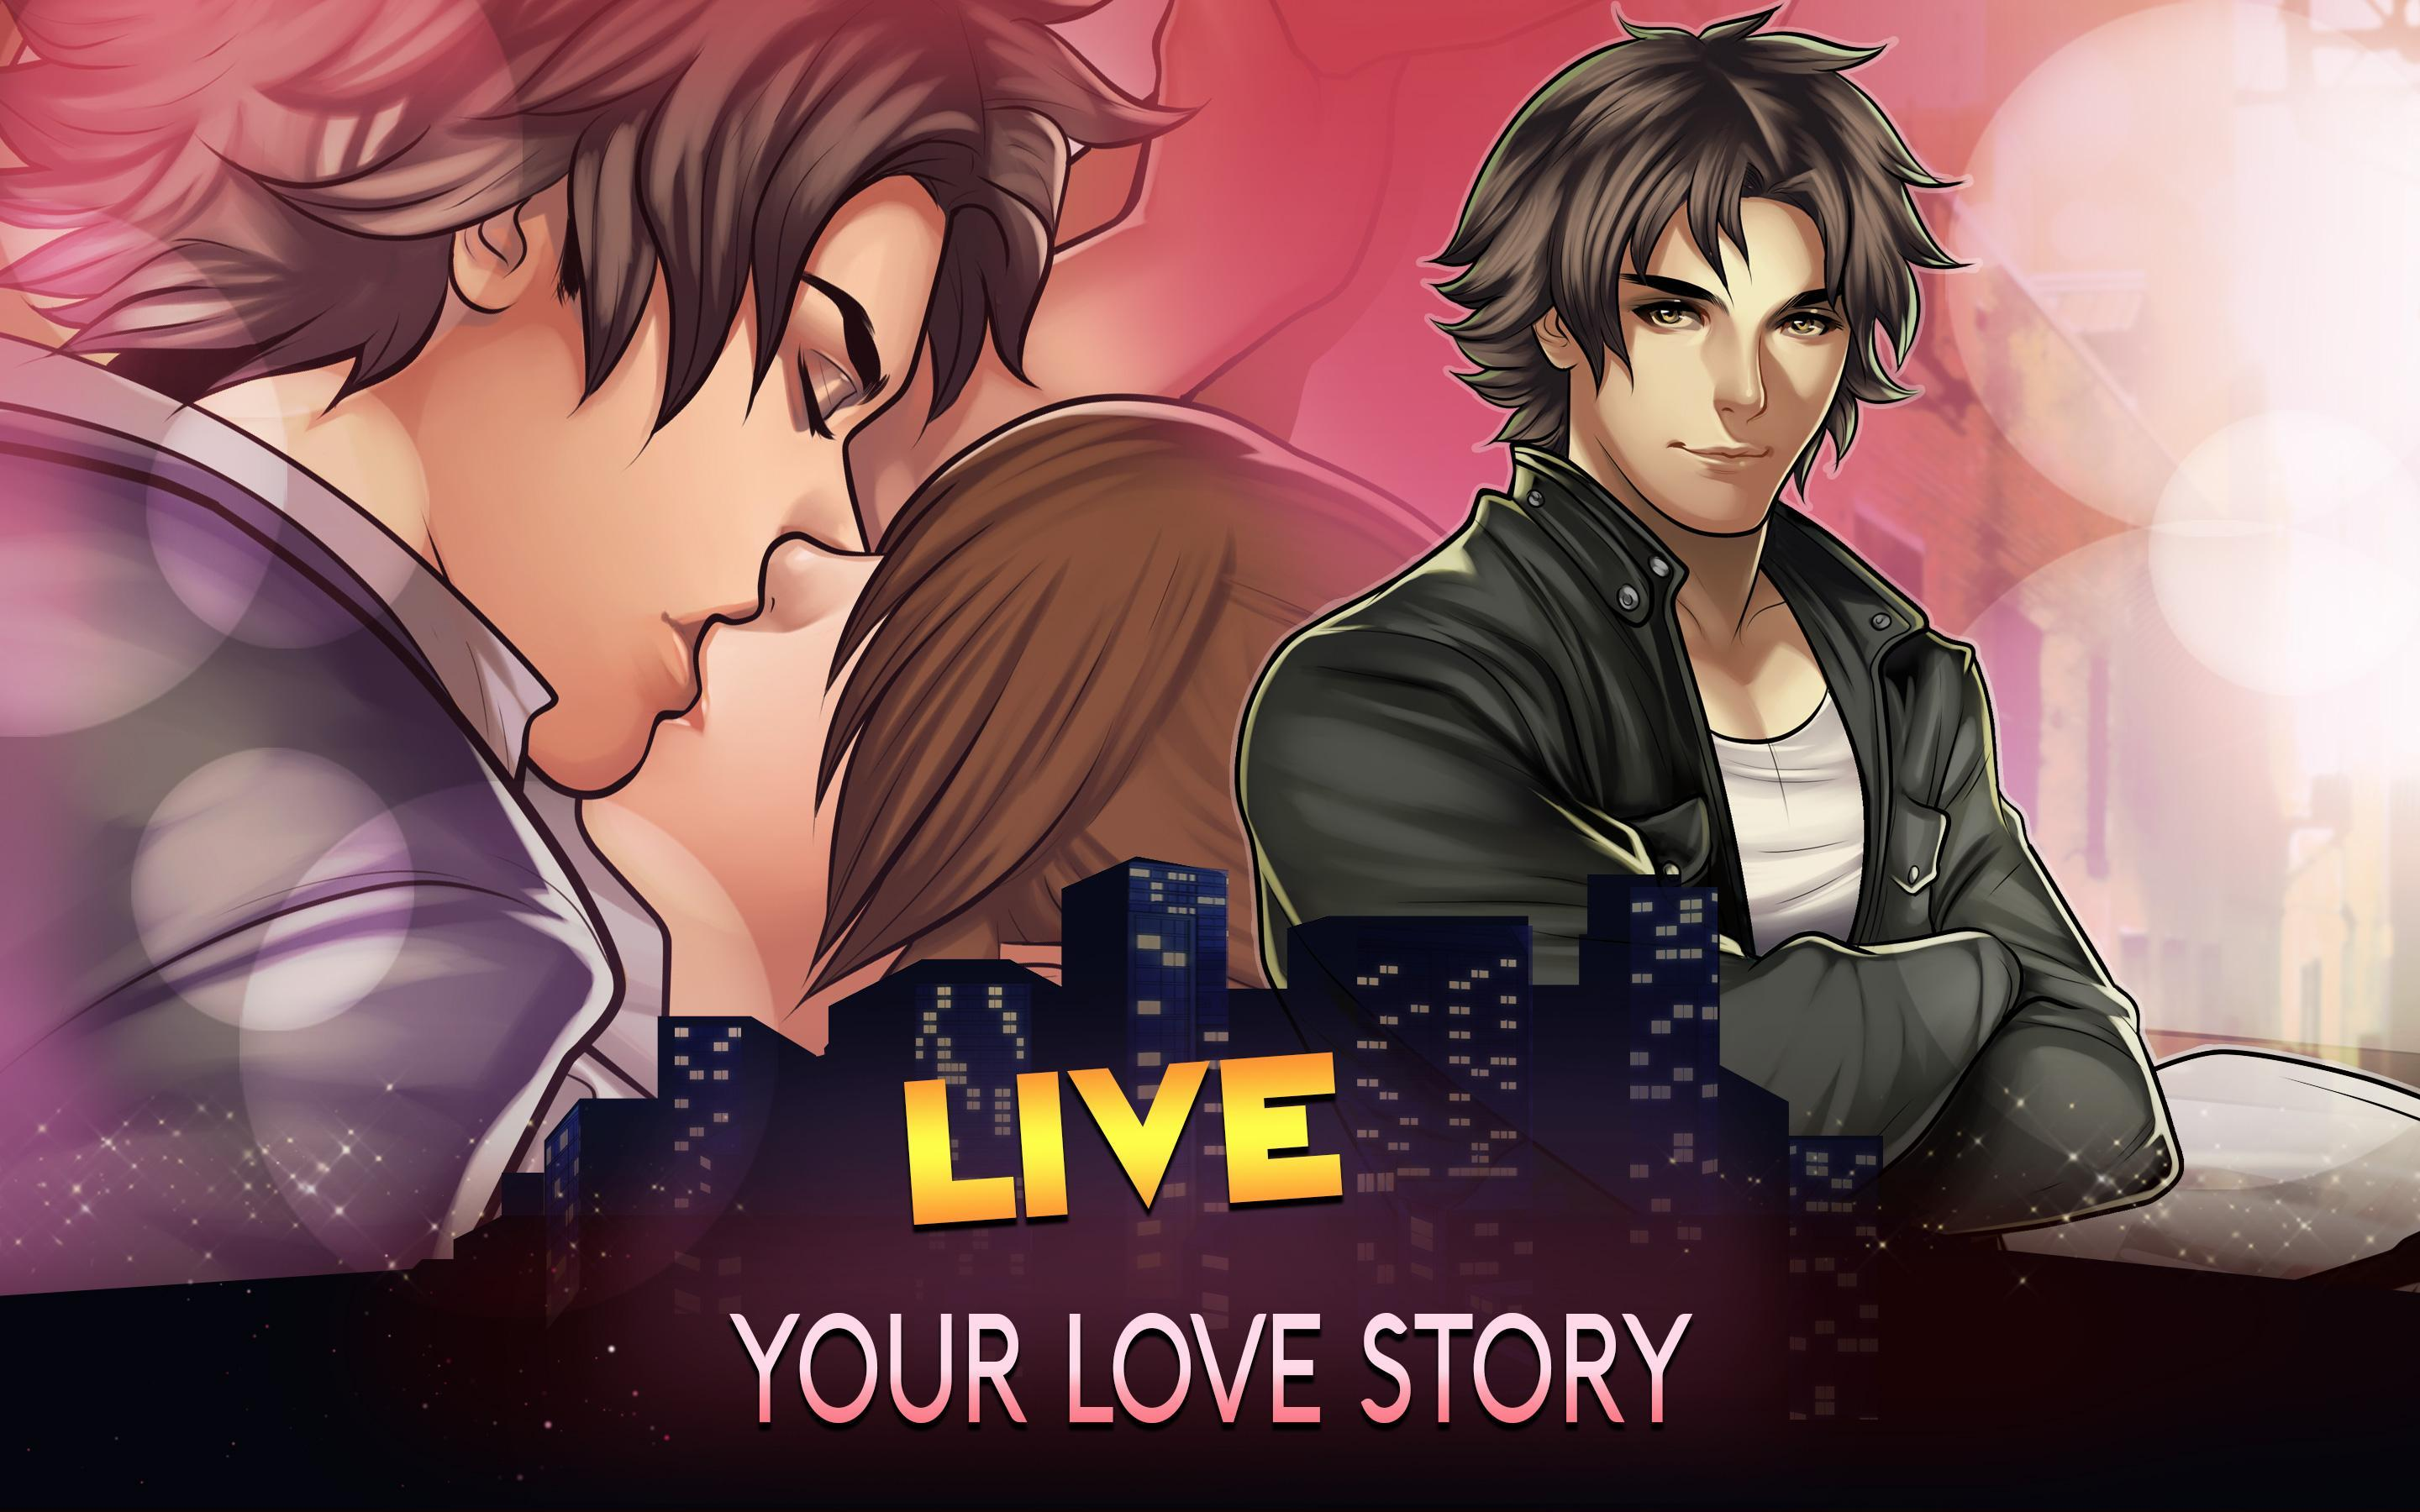 Game online gratis download Is-it Love? Matt - Dating Sim